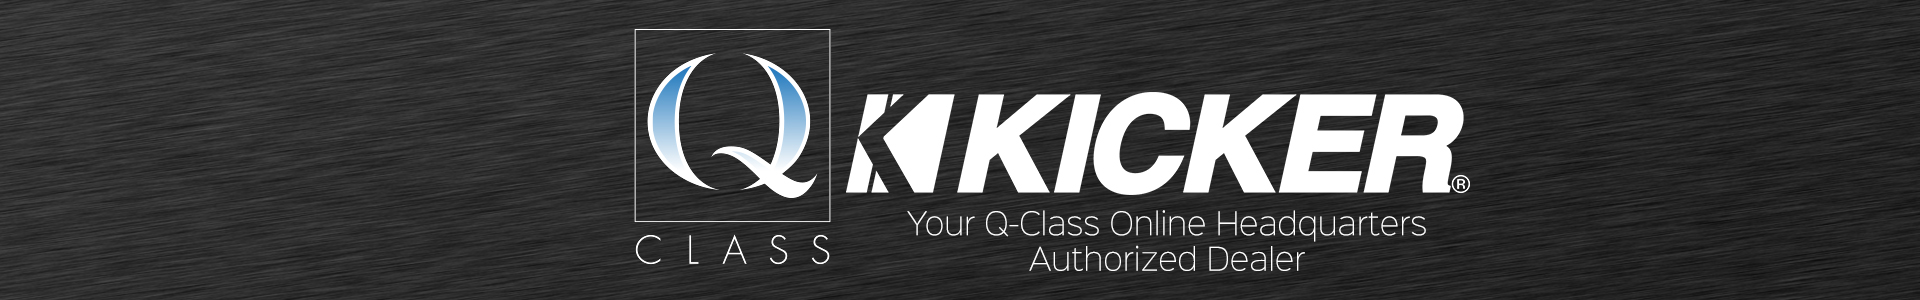 Kicker Q-Class Authorized Dealer